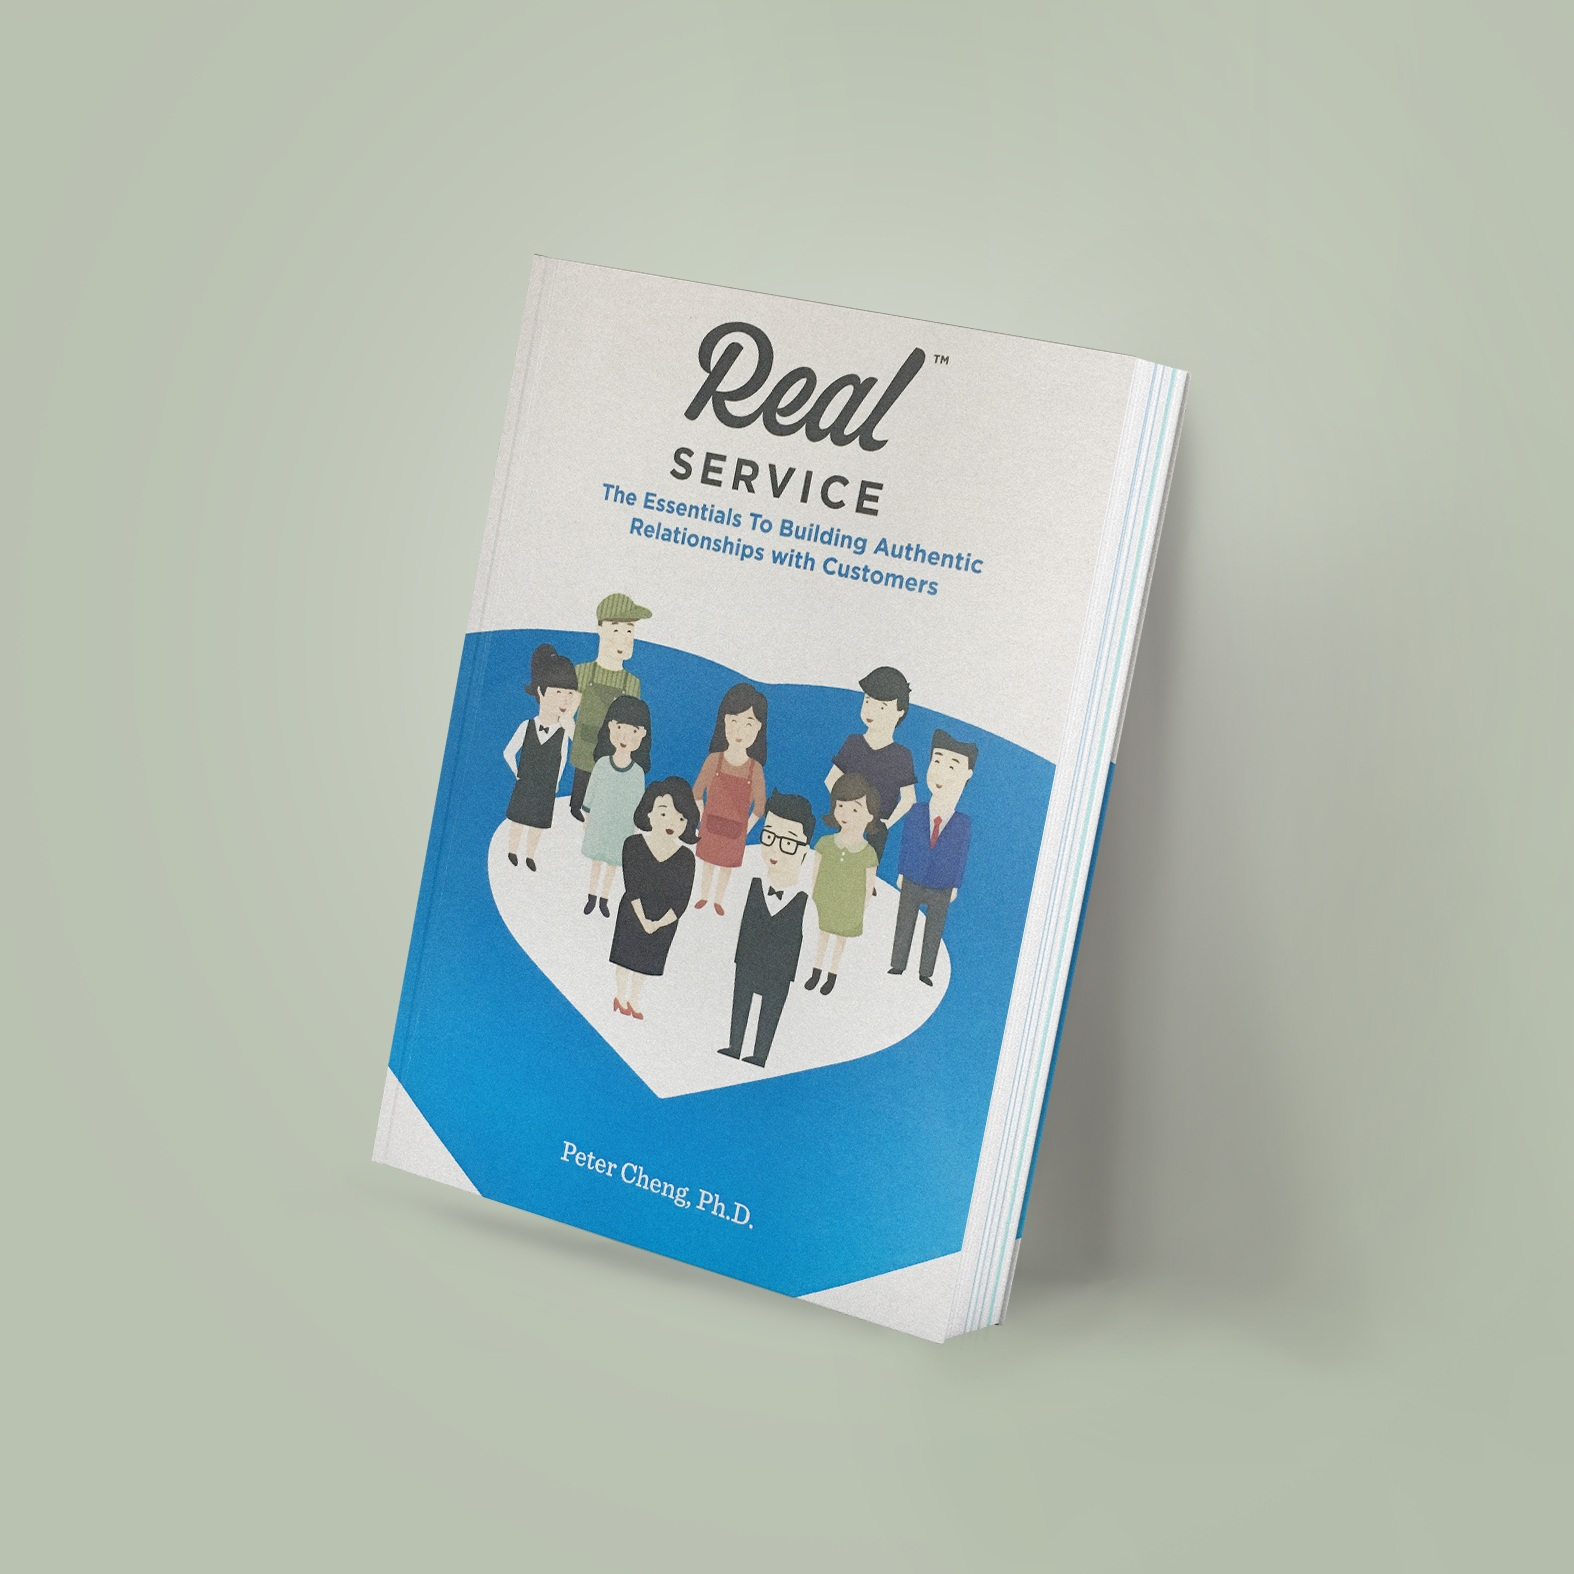 Real Service: The Essentials to Building Authentic Relationships with Customers    Excellent customer service is no longer an option, but a necessity in this competitive business environment. Real Service provides great insights in building authentic relationships with customers, delving into the hard technical skills as well as soft people skills.   SALE